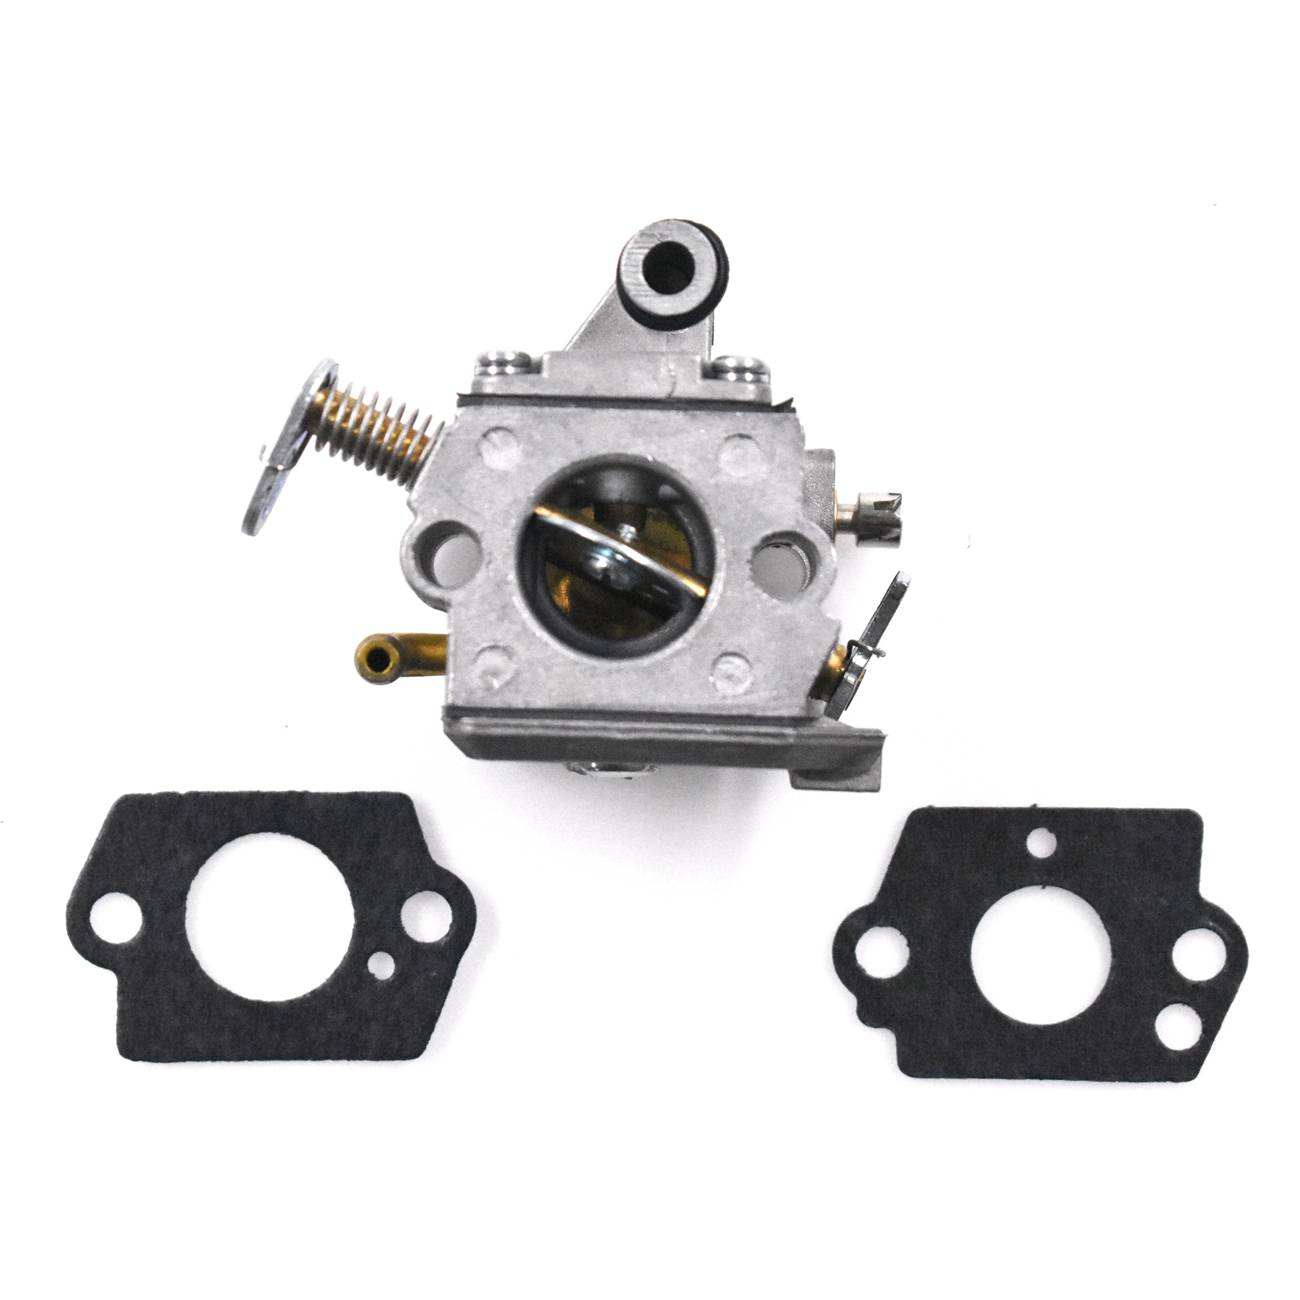 Carburetor Carb For STIHL 017 MS170 018 MS180 Chainsaw 113012006031 carburetor carb for zama fit stl chainsaw 017 018 ms170 ms180